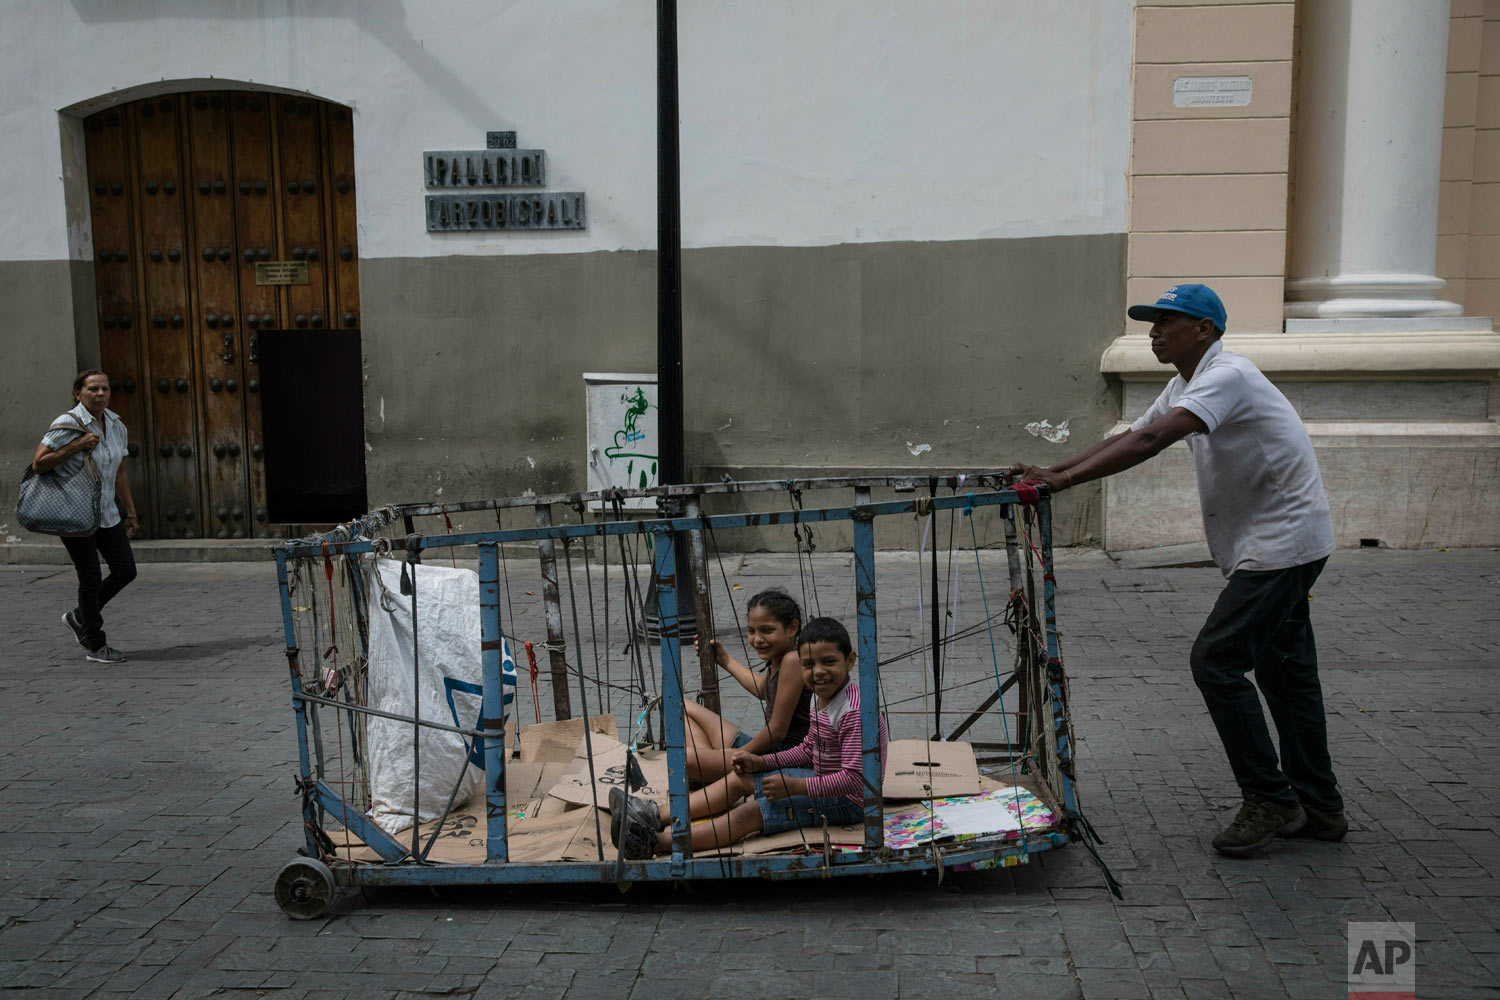 A man pushes his children in his recycling cart through downtown Caracas, Venezuela, Tuesday, May 14, 2019. (AP Photo/Rodrigo Abd)